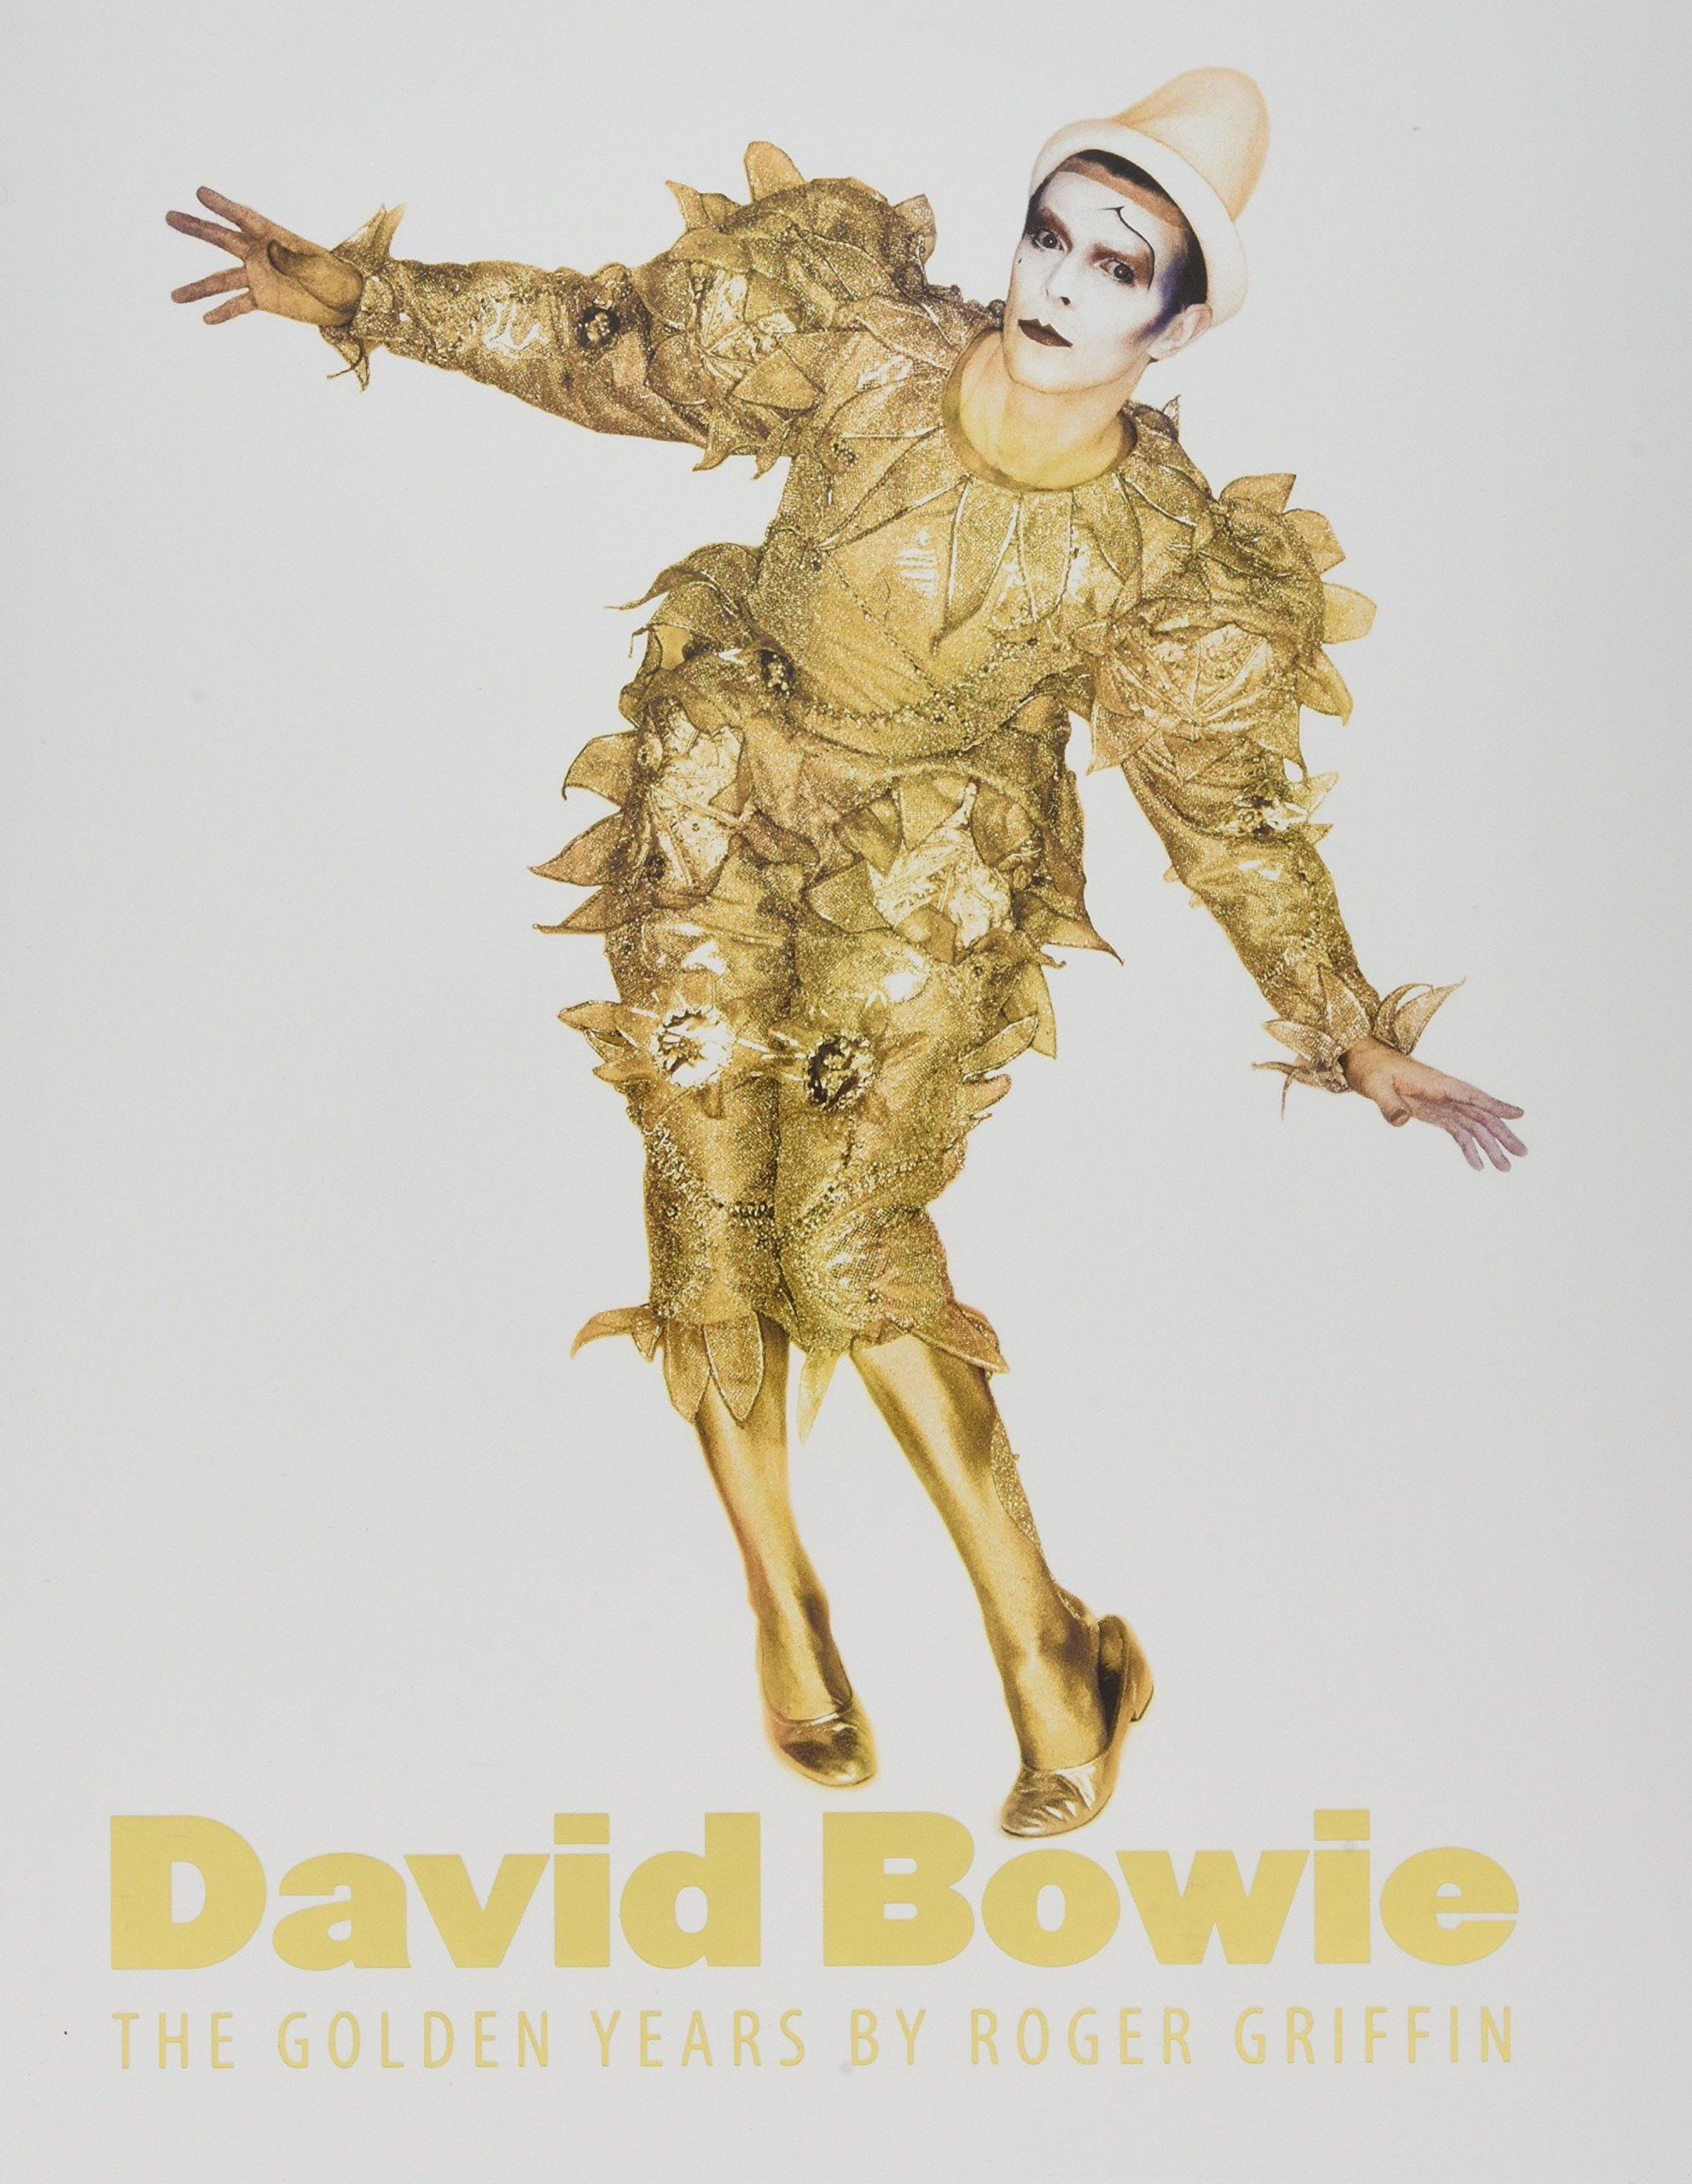 The Golden Years: David Bowie PDF